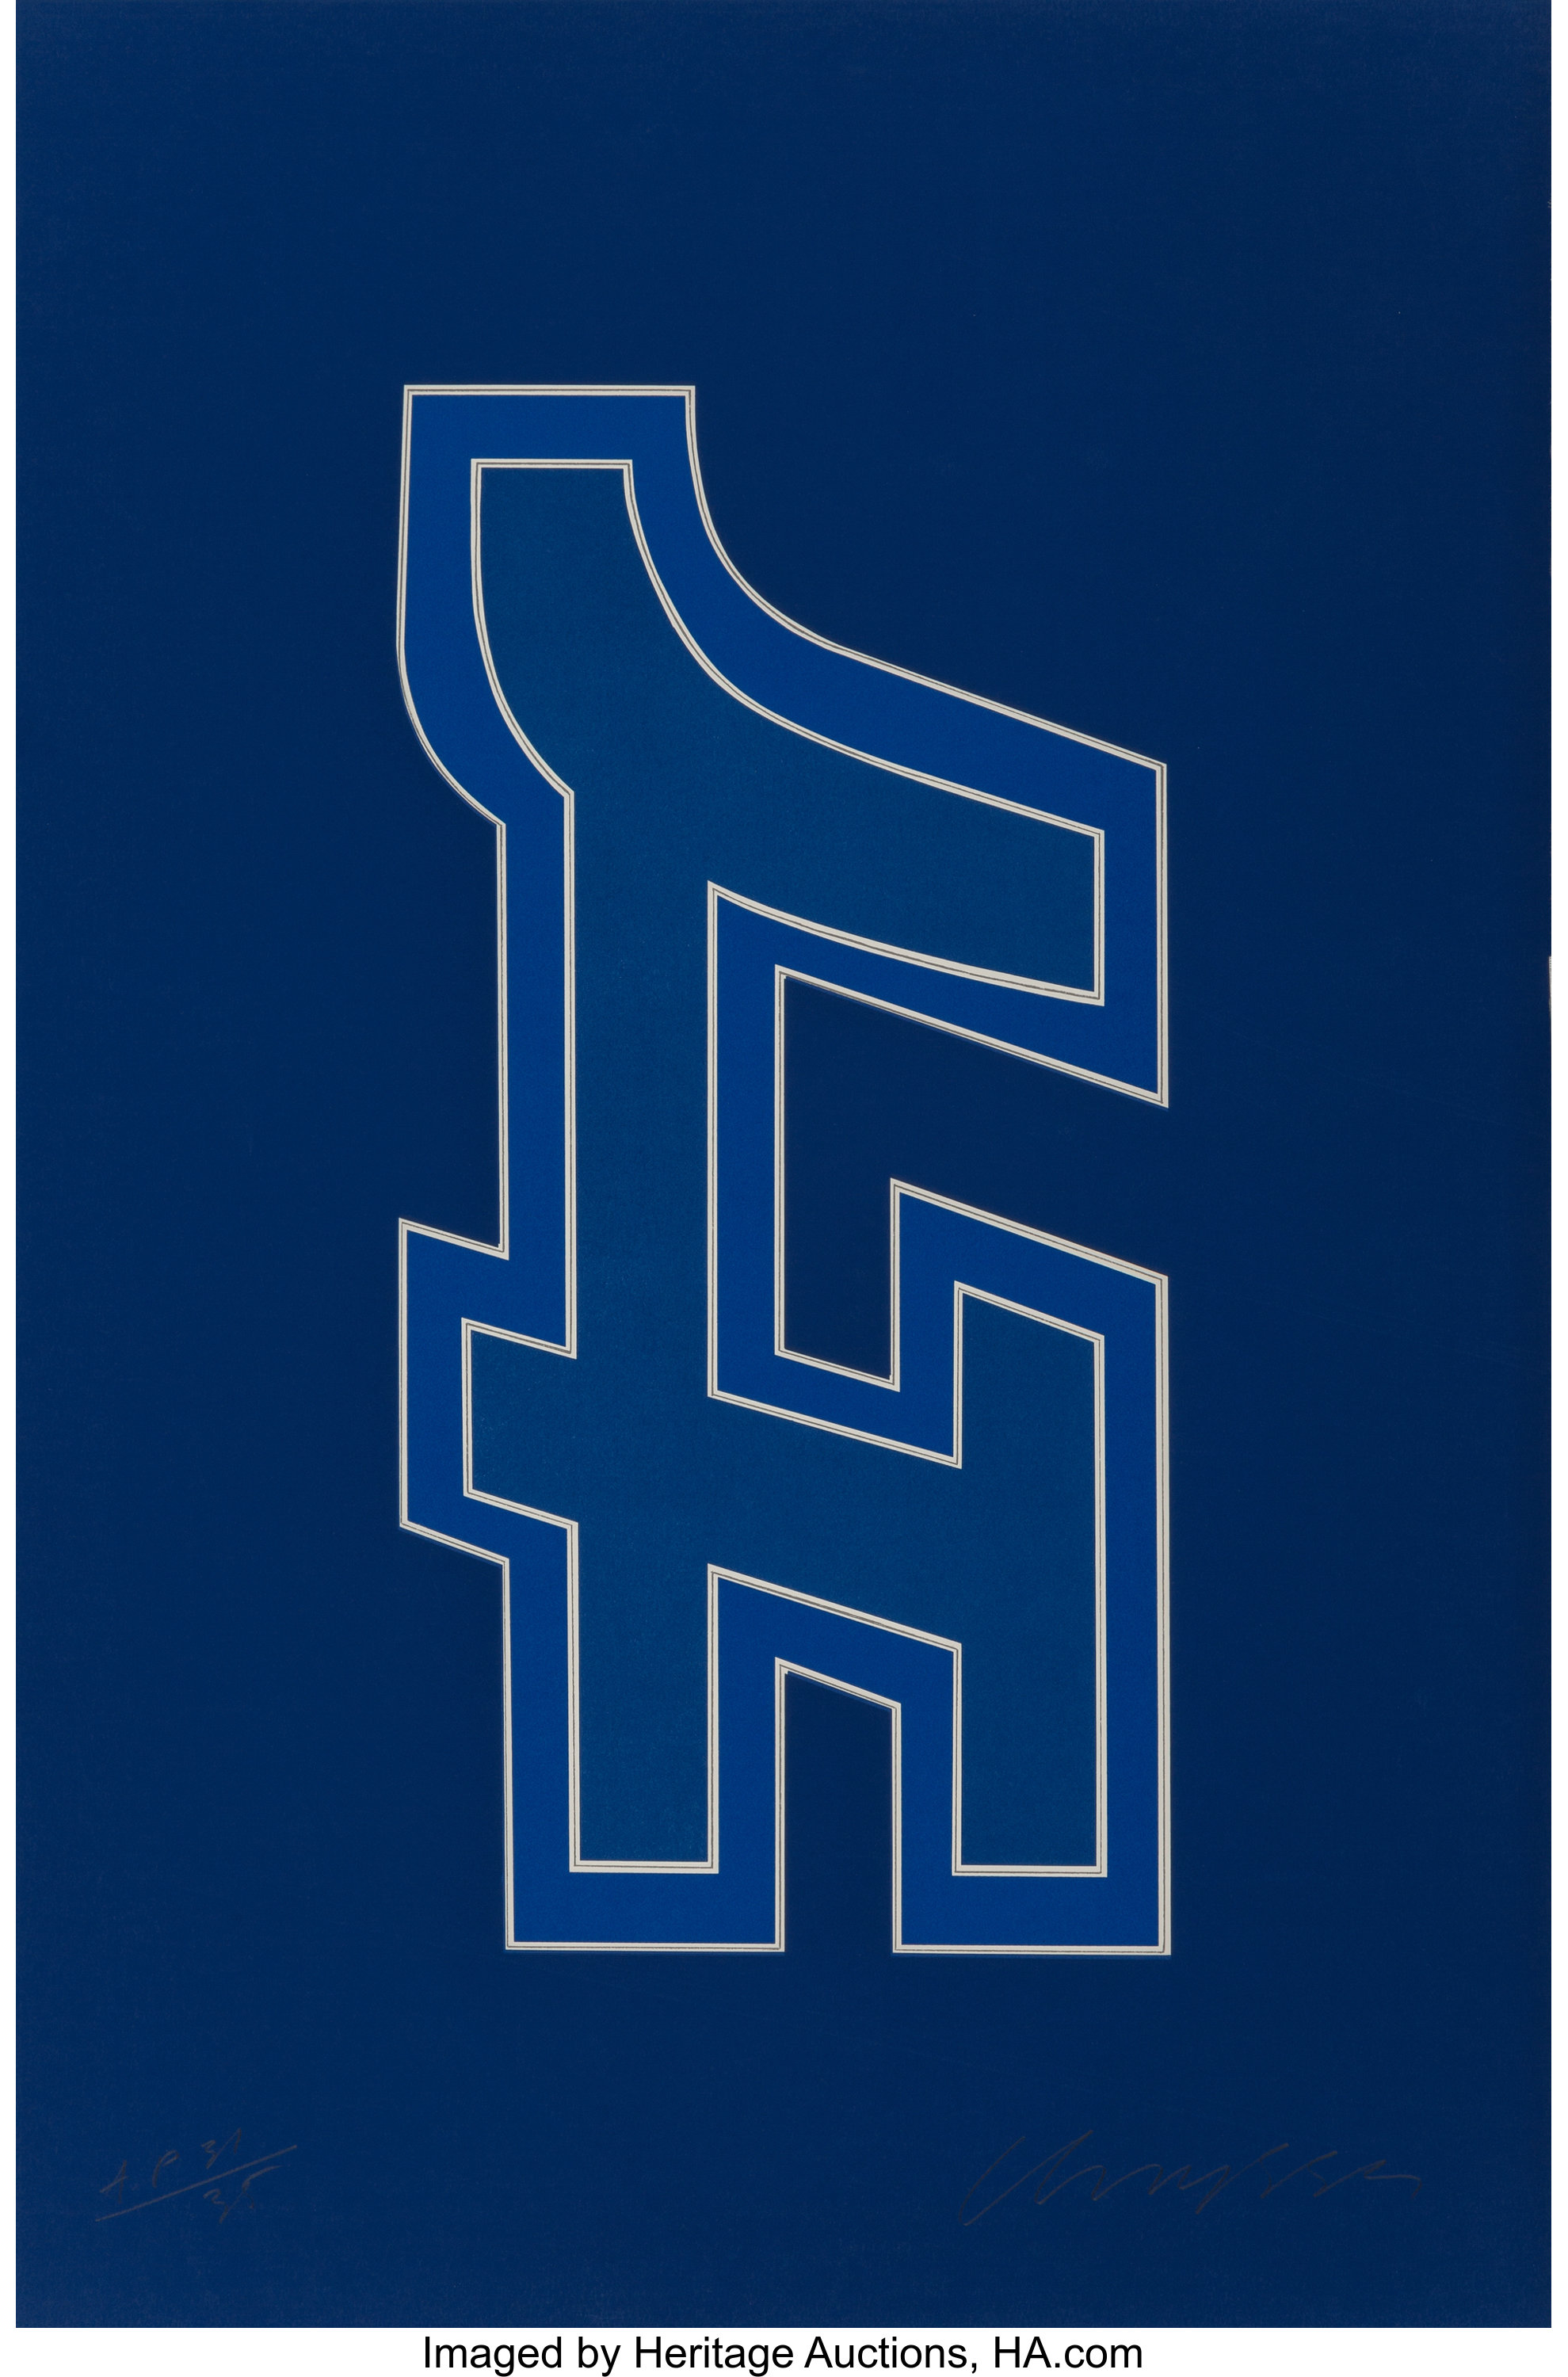 Chryssa (1933-2013)  Time Square Fragment #9, 1979